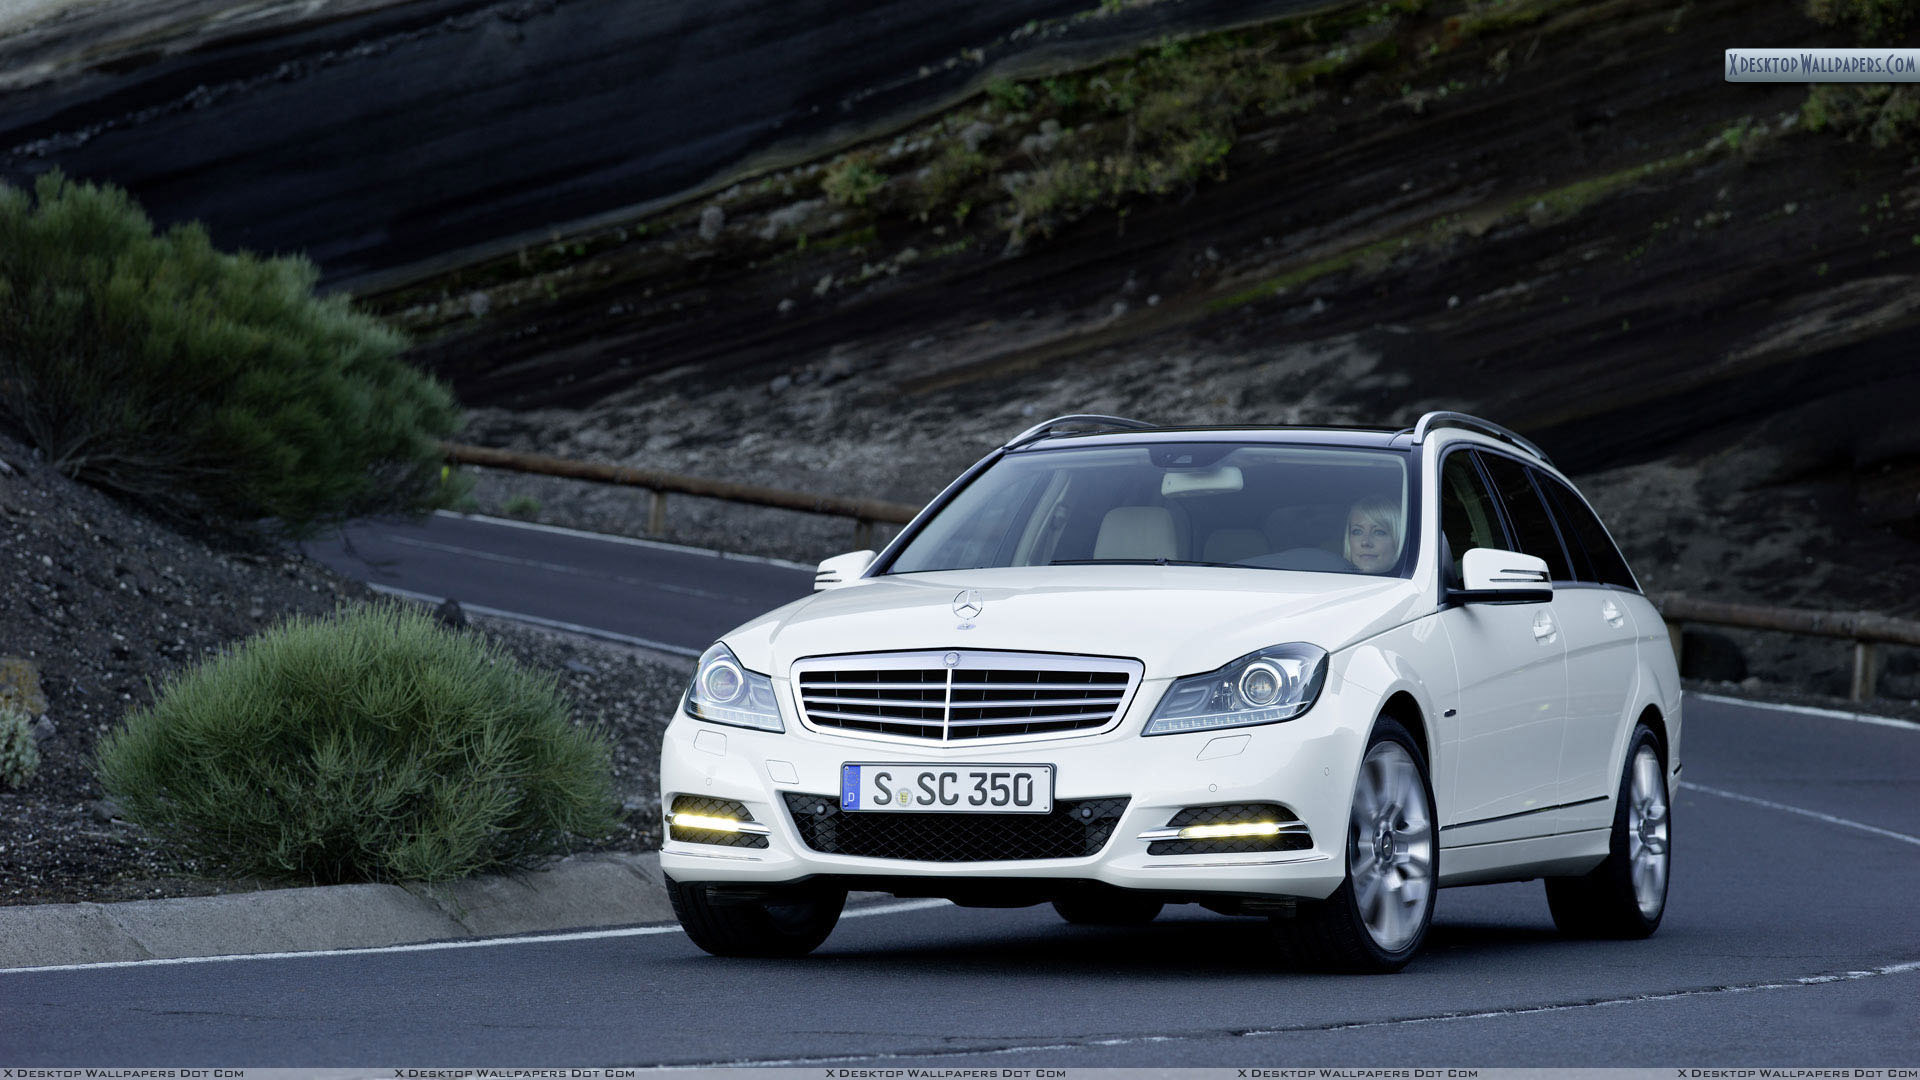 mercedes-benz c-class c350 on highway wallpaper